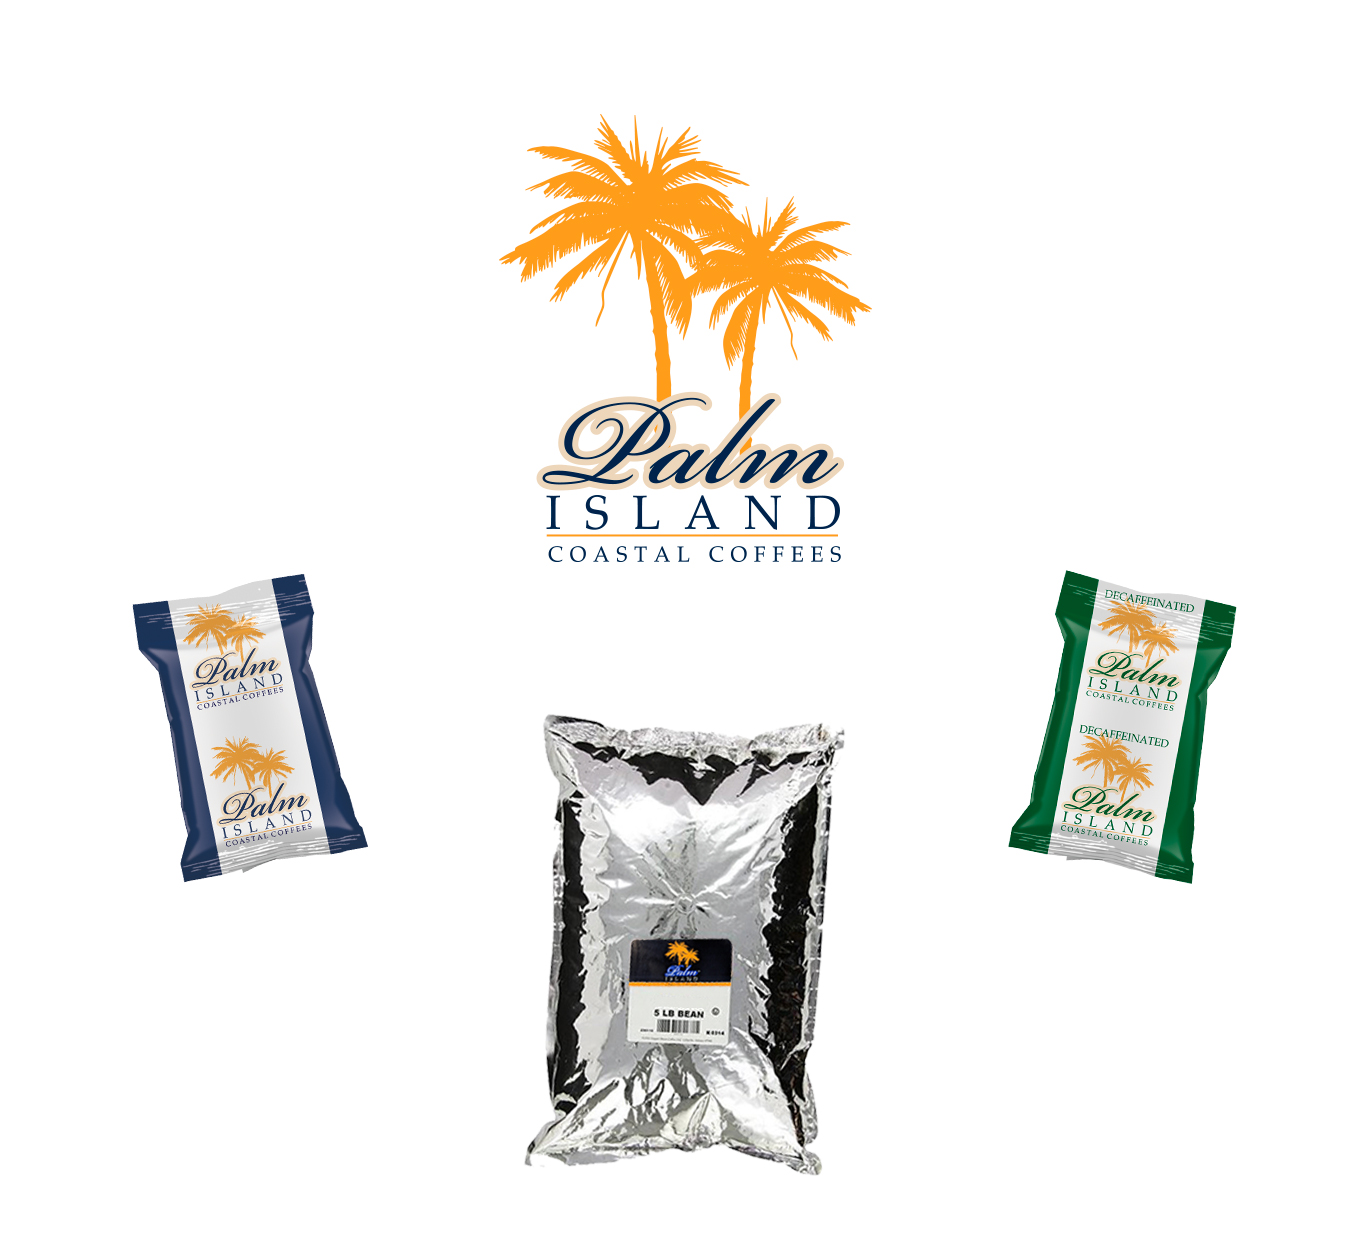 Brands-Images-Palm-Island.jpg